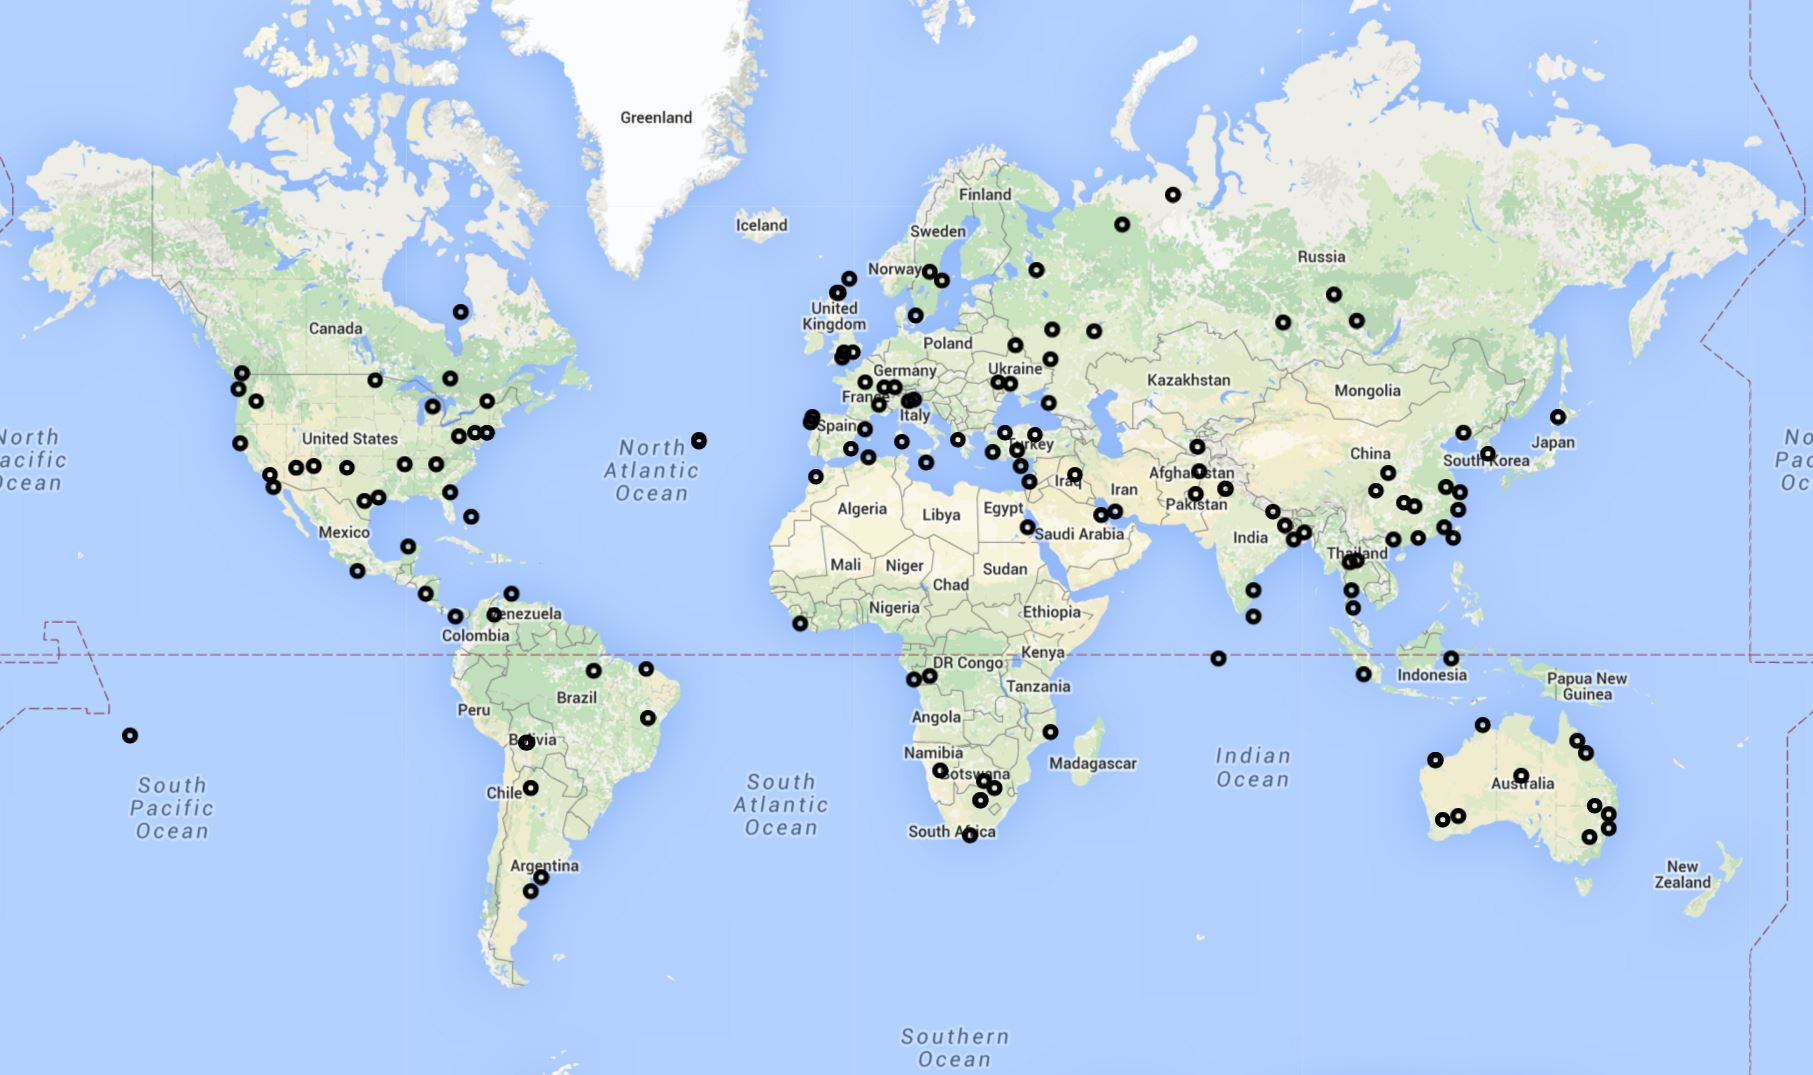 New Flightradar24 receivers activated during March 2016